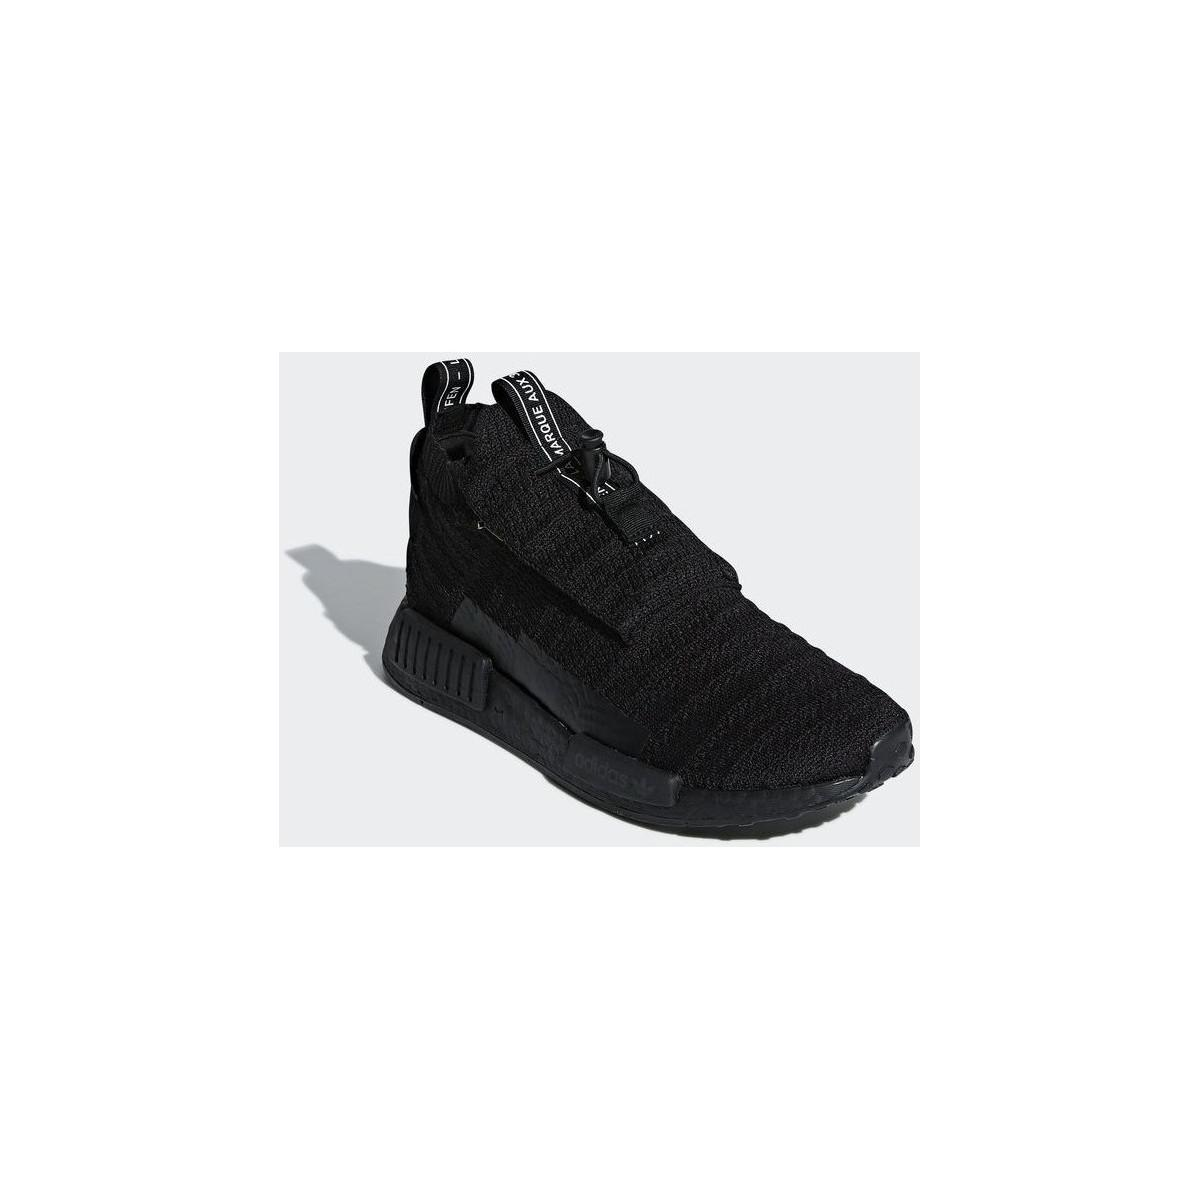 ac86ab9cae2dc6 adidas Nmd Ts1 Primeknit Gtx Men s Shoes (trainers) In Black in ...